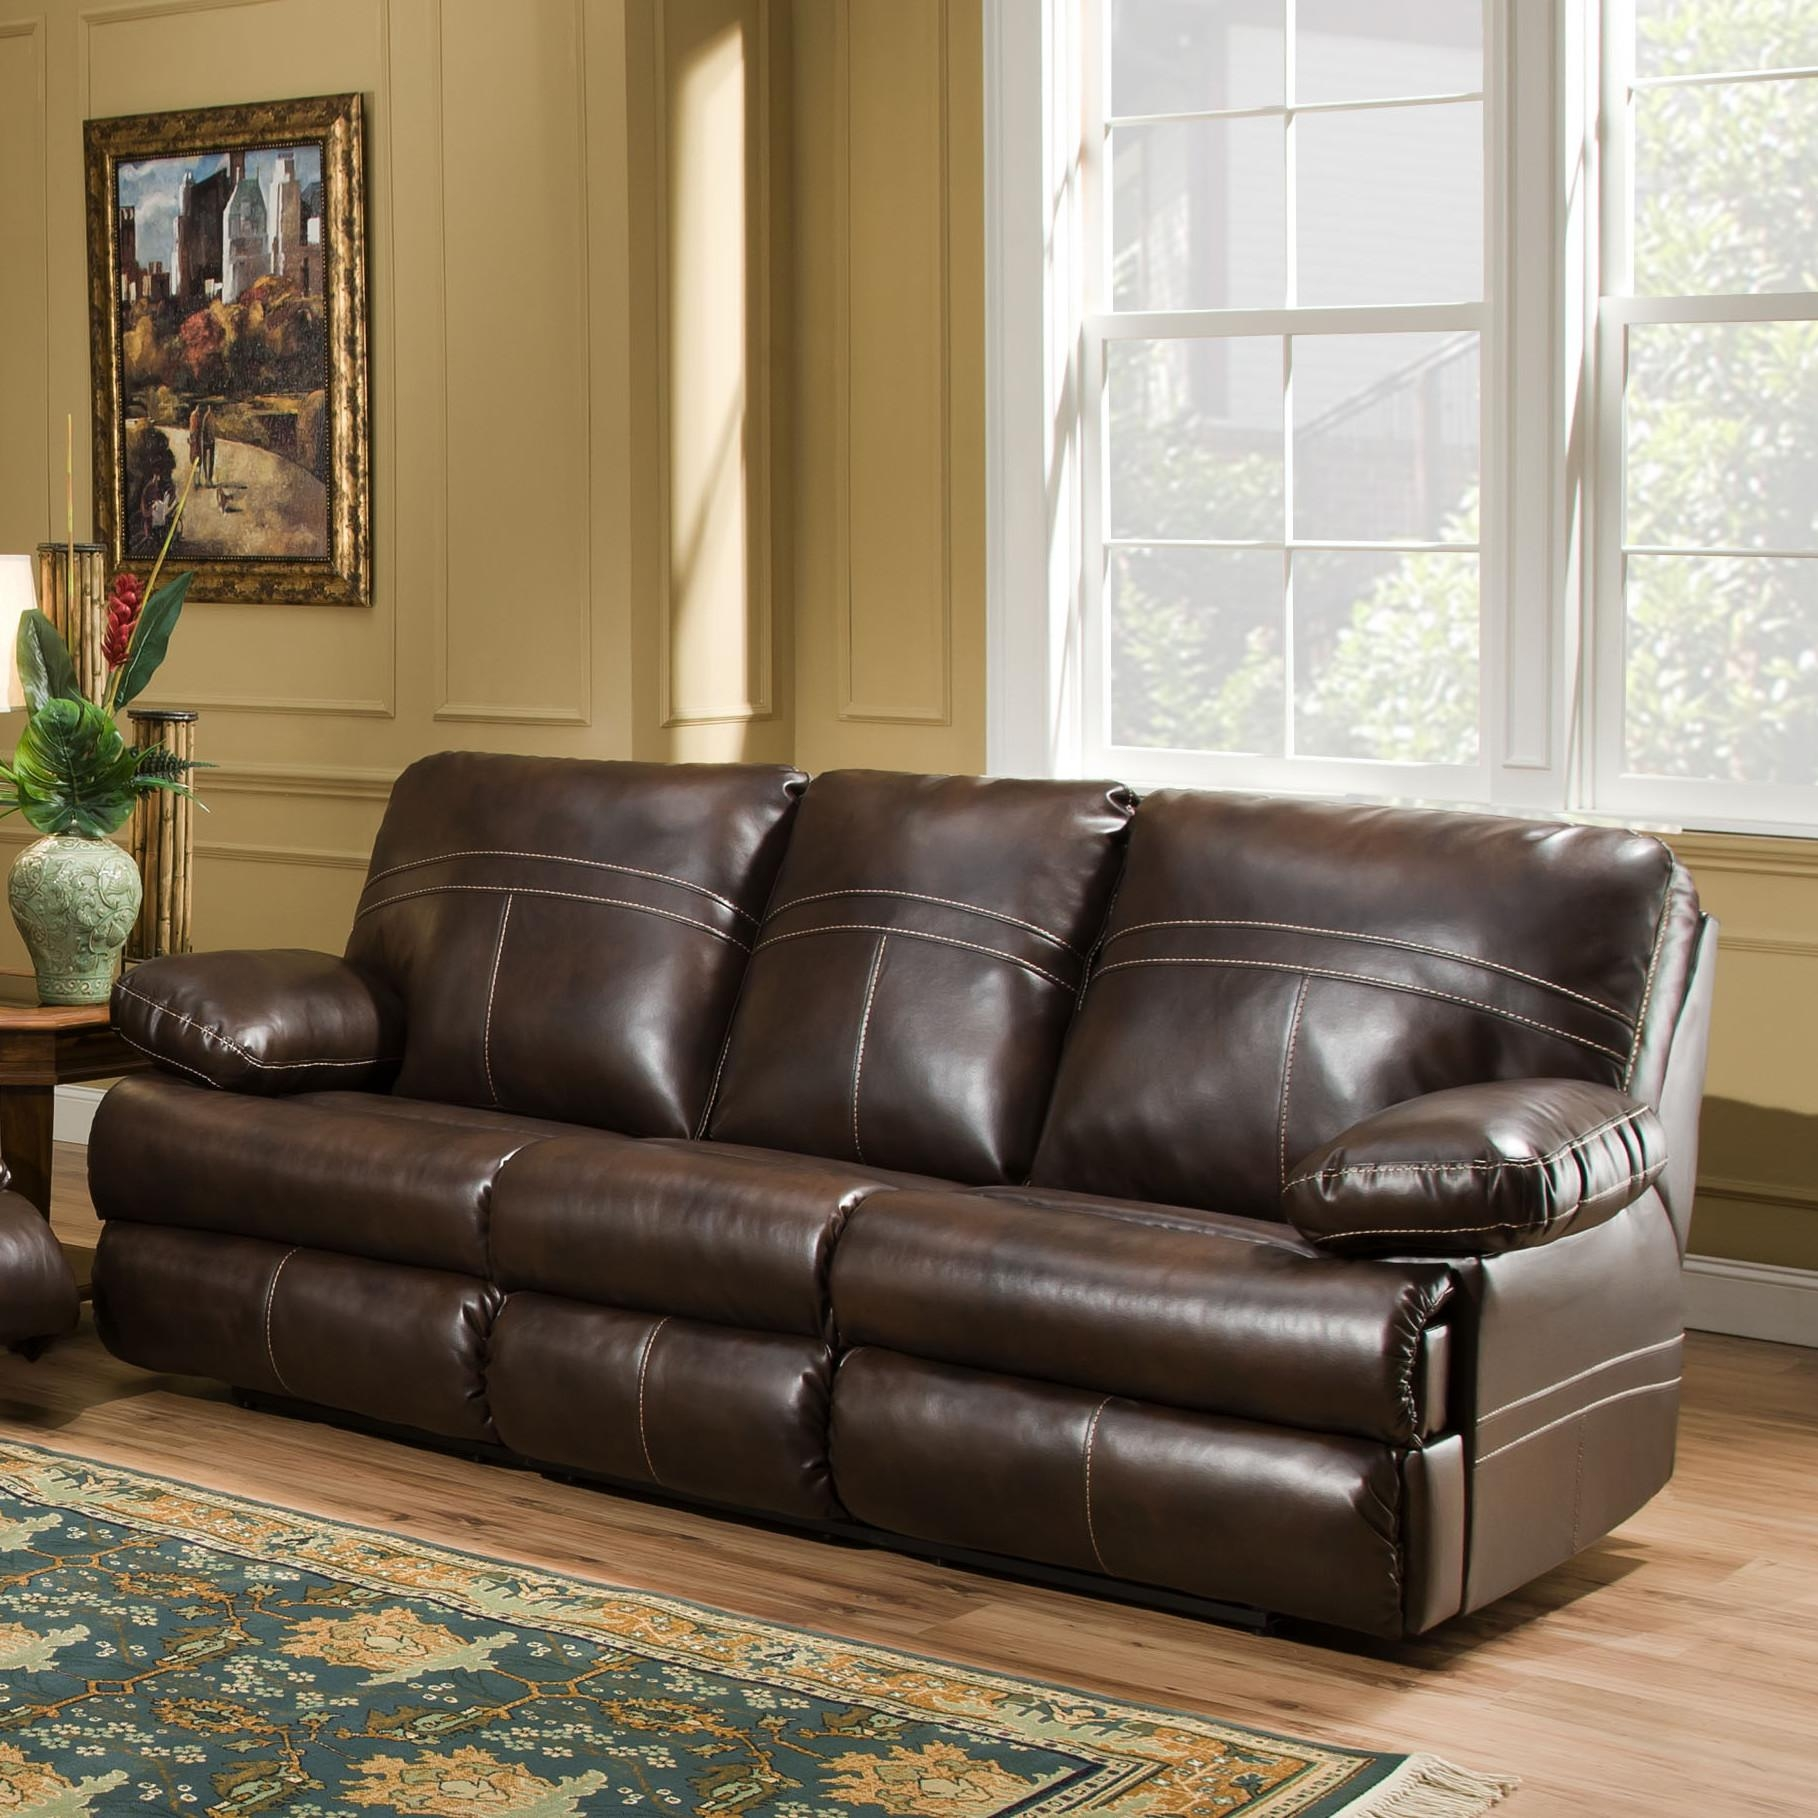 Furniture: Simmons Sectional For Comfortable Seating — Threestems In Big Lots Simmons Sectional Sofas (View 6 of 20)